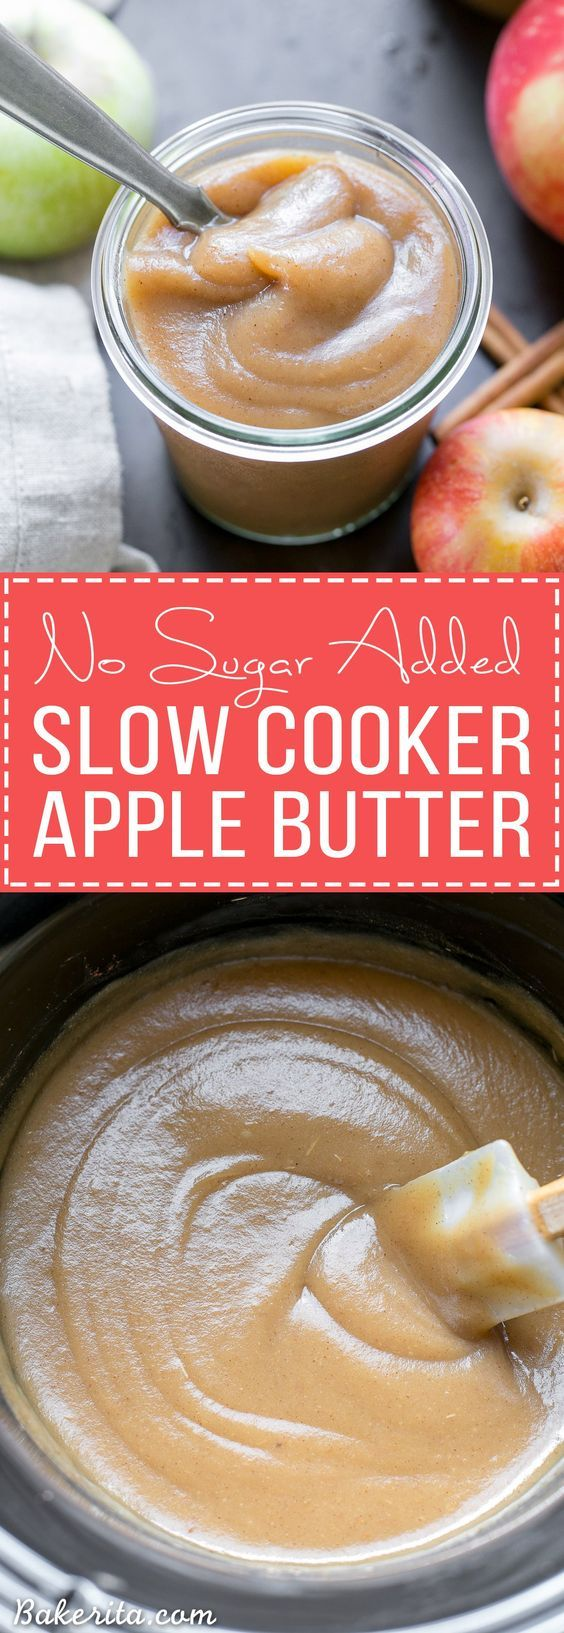 This Slow Cooker Apple Butter has no sugar added - just fresh apples, cinnamon, nutmeg, and a little lemon juice. This homemade healthy apple butter can be enjoyed on toast, stirred into oatmeal or yogurt, or eaten by the spoonful!